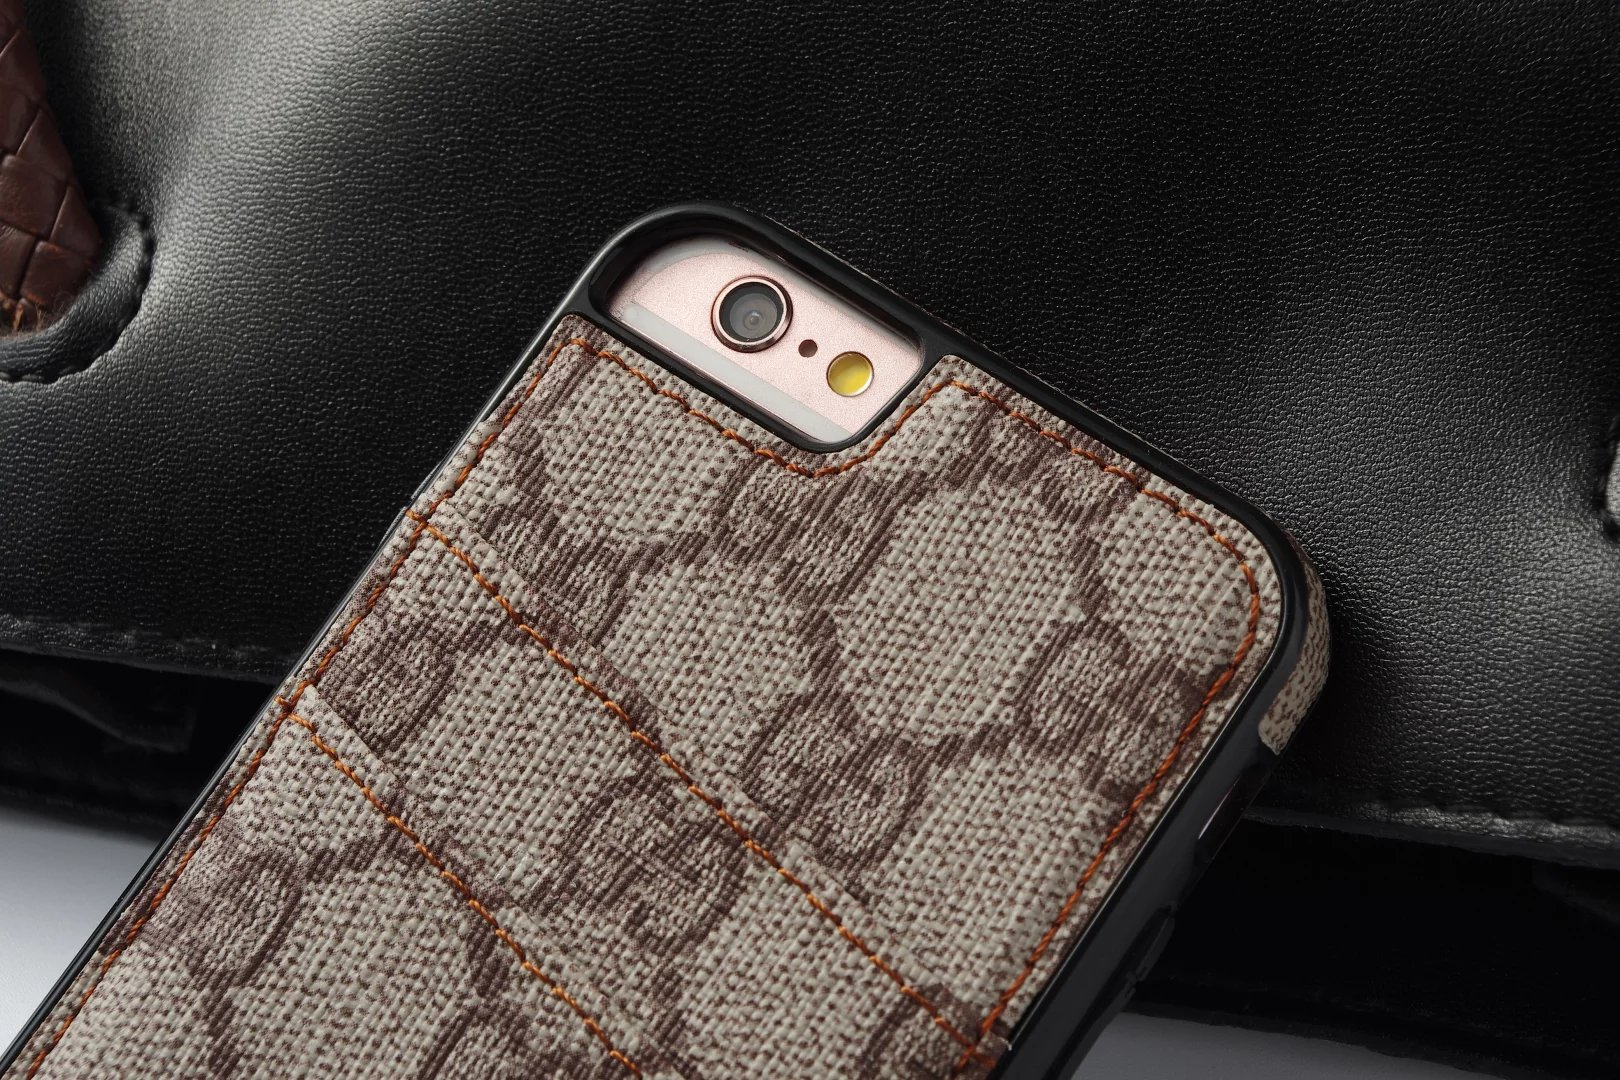 iphone 6s Plus cases on sale iphone 6s Plus case shop fashion iphone6s plus case iphone 6 case with screen cover best iphone 6 case brands designer ipad case mobile phone case iphone five s cases where to get iphone cases